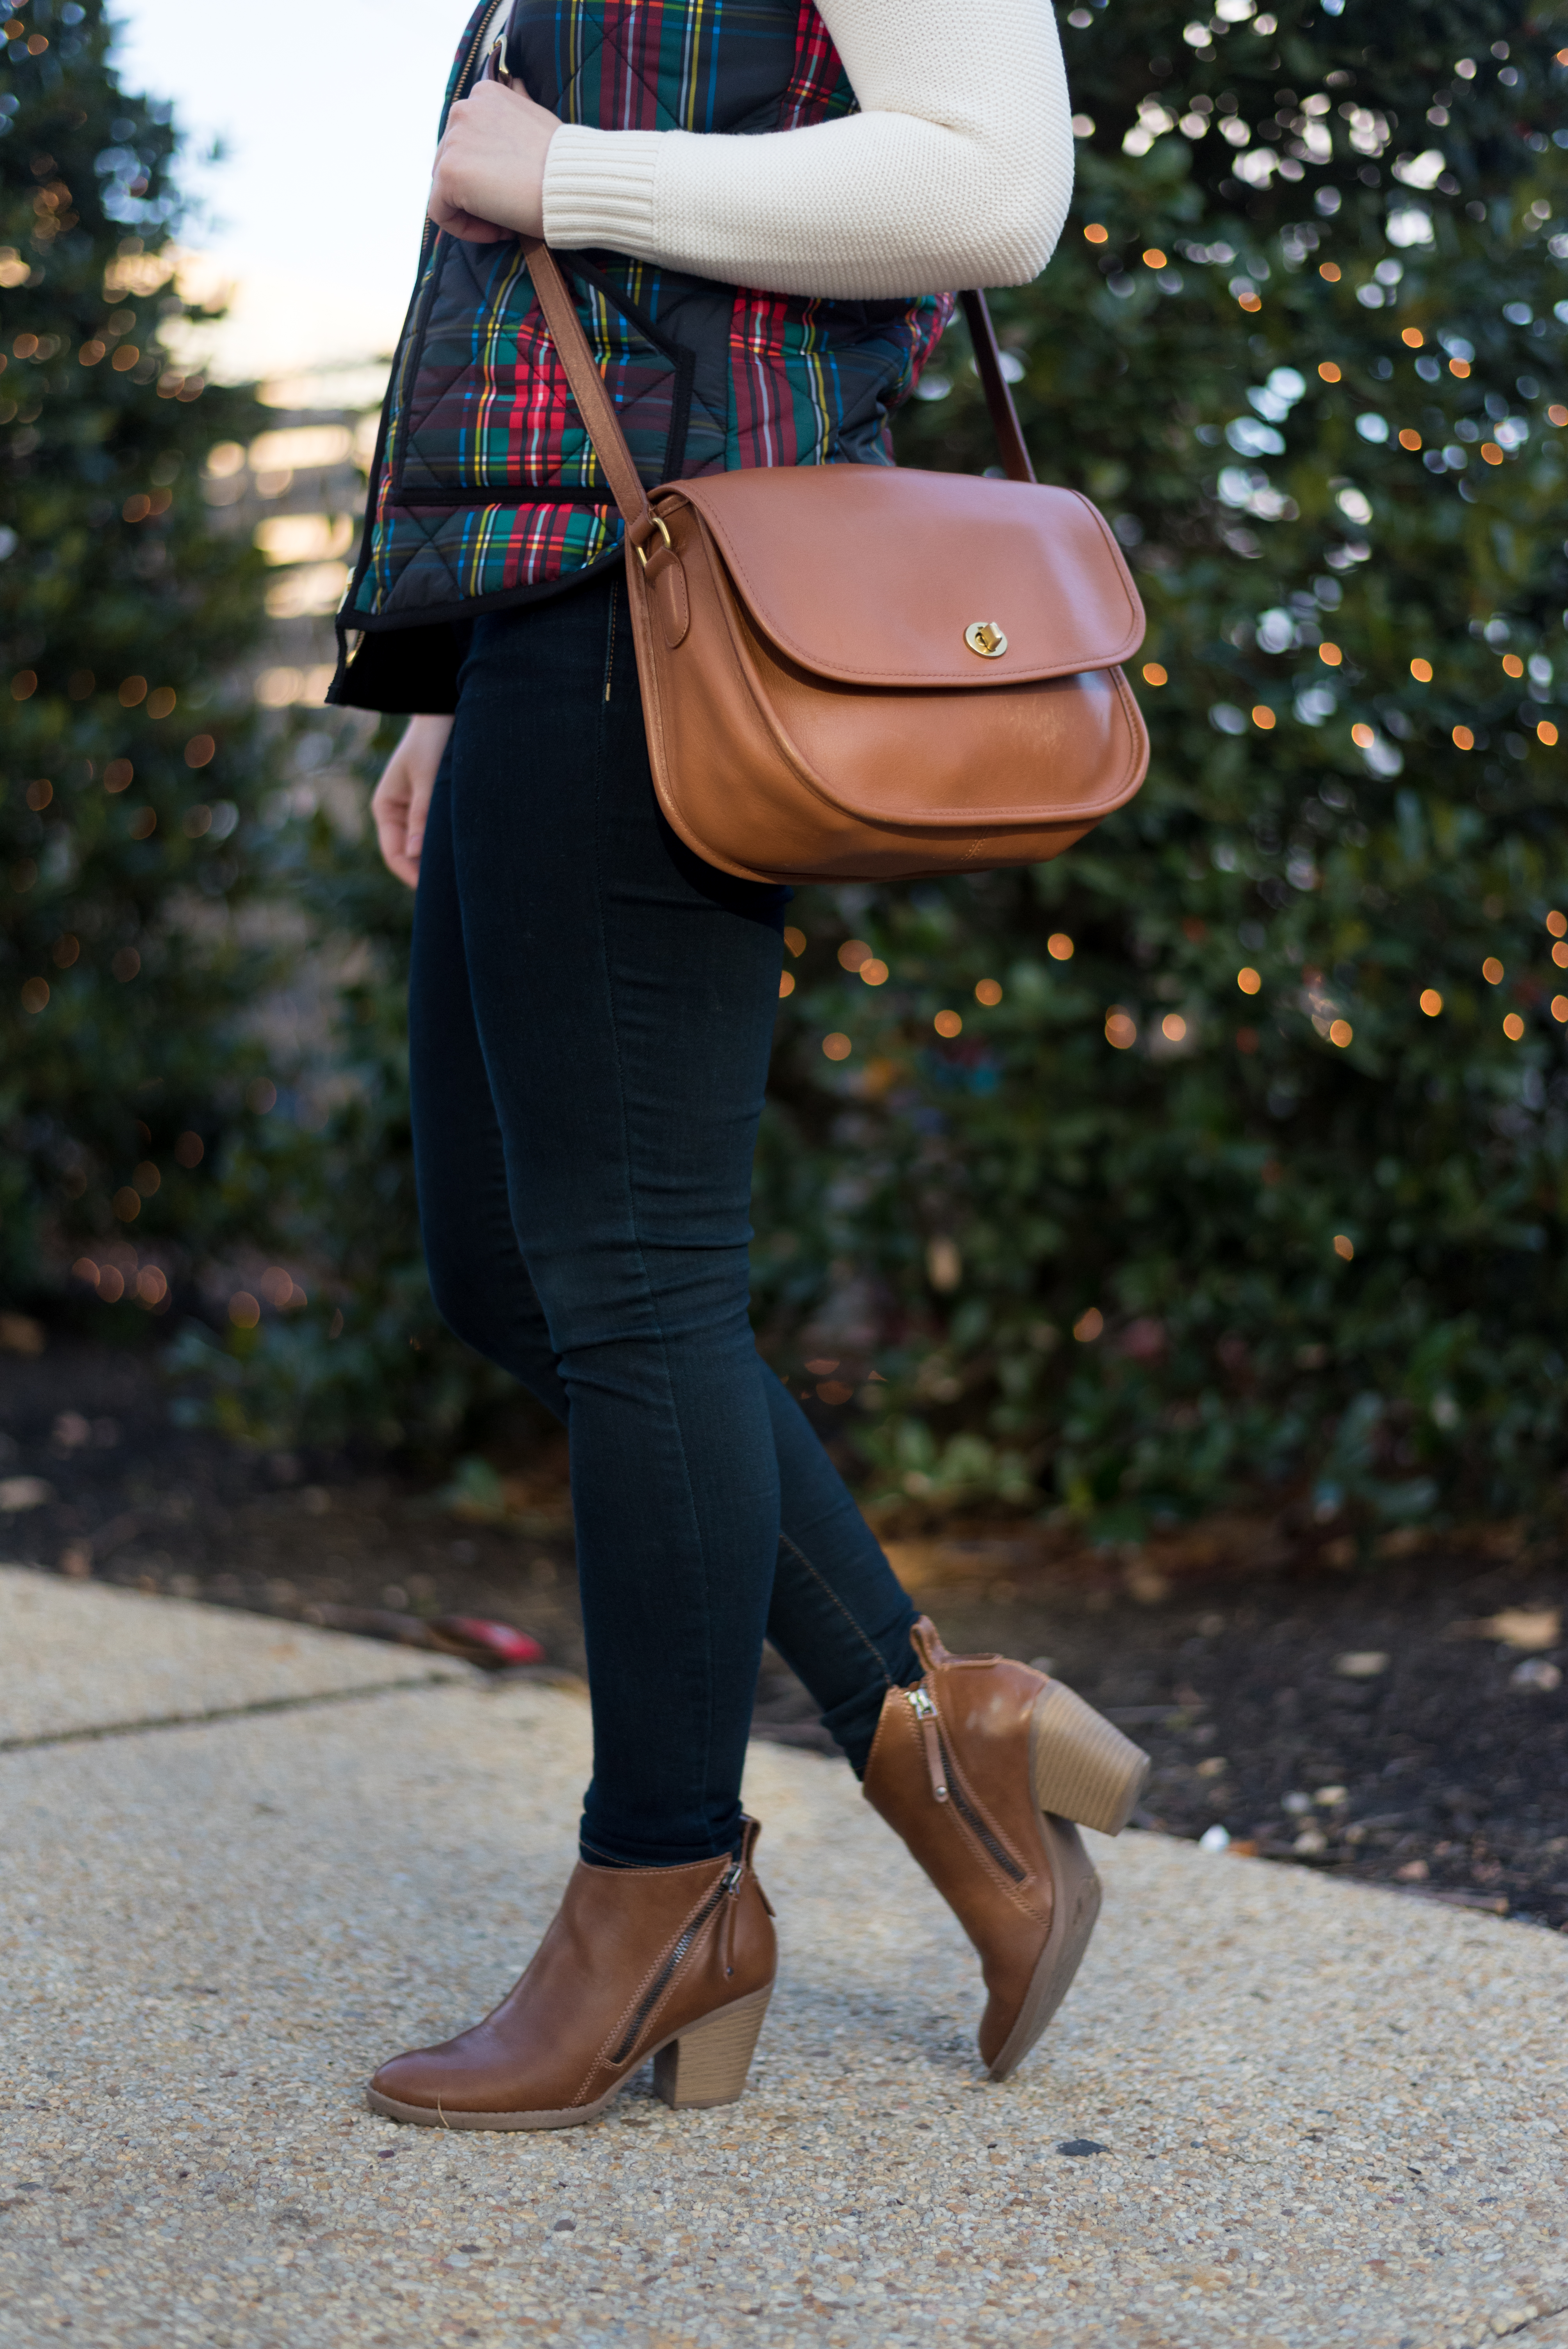 My 2018 Word of the Year, a Reader Survey, AND Giveaway (oh my!) | Something Good, @danaerinw , j.crew plaid vest, plaid vest, aeo jeans, jeggings, dark denim, dark jeans, coach city classic, crossbody bag, cognac purse, target ankle boots, ankle boots, cognac boots, women's clothing, shoes, boots, white sweater